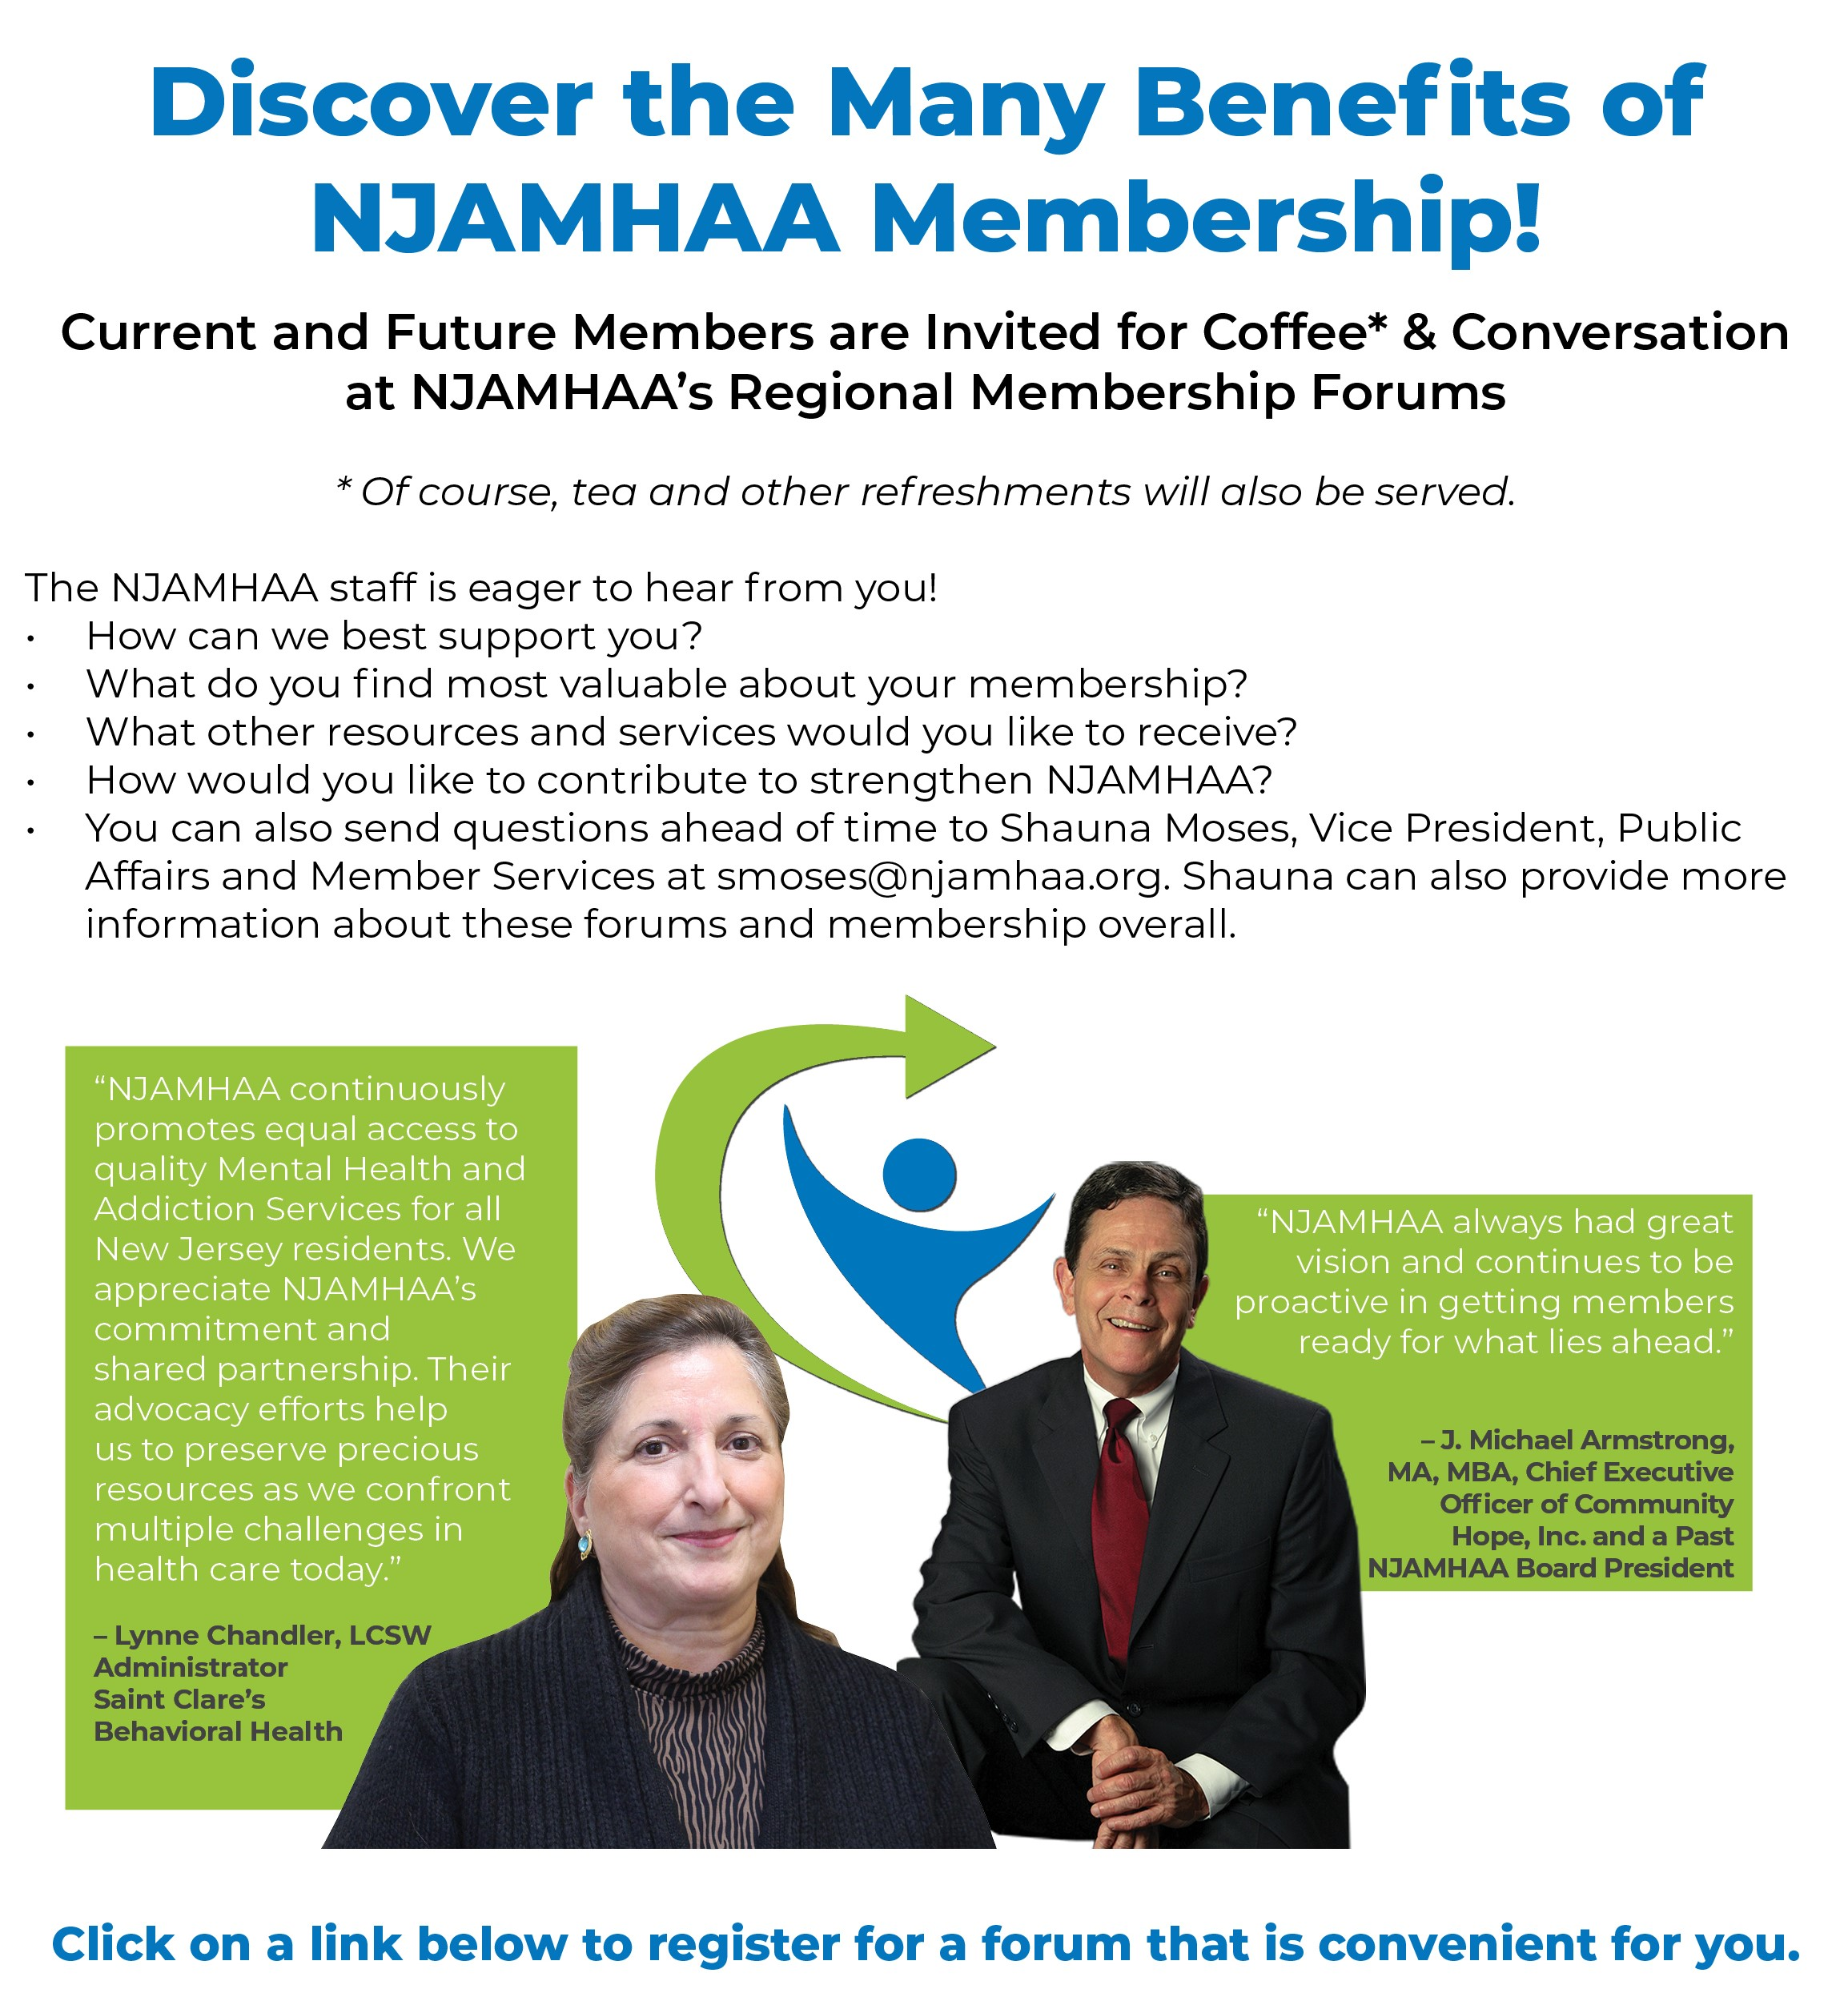 NJAMHAA Regional Membership Forums